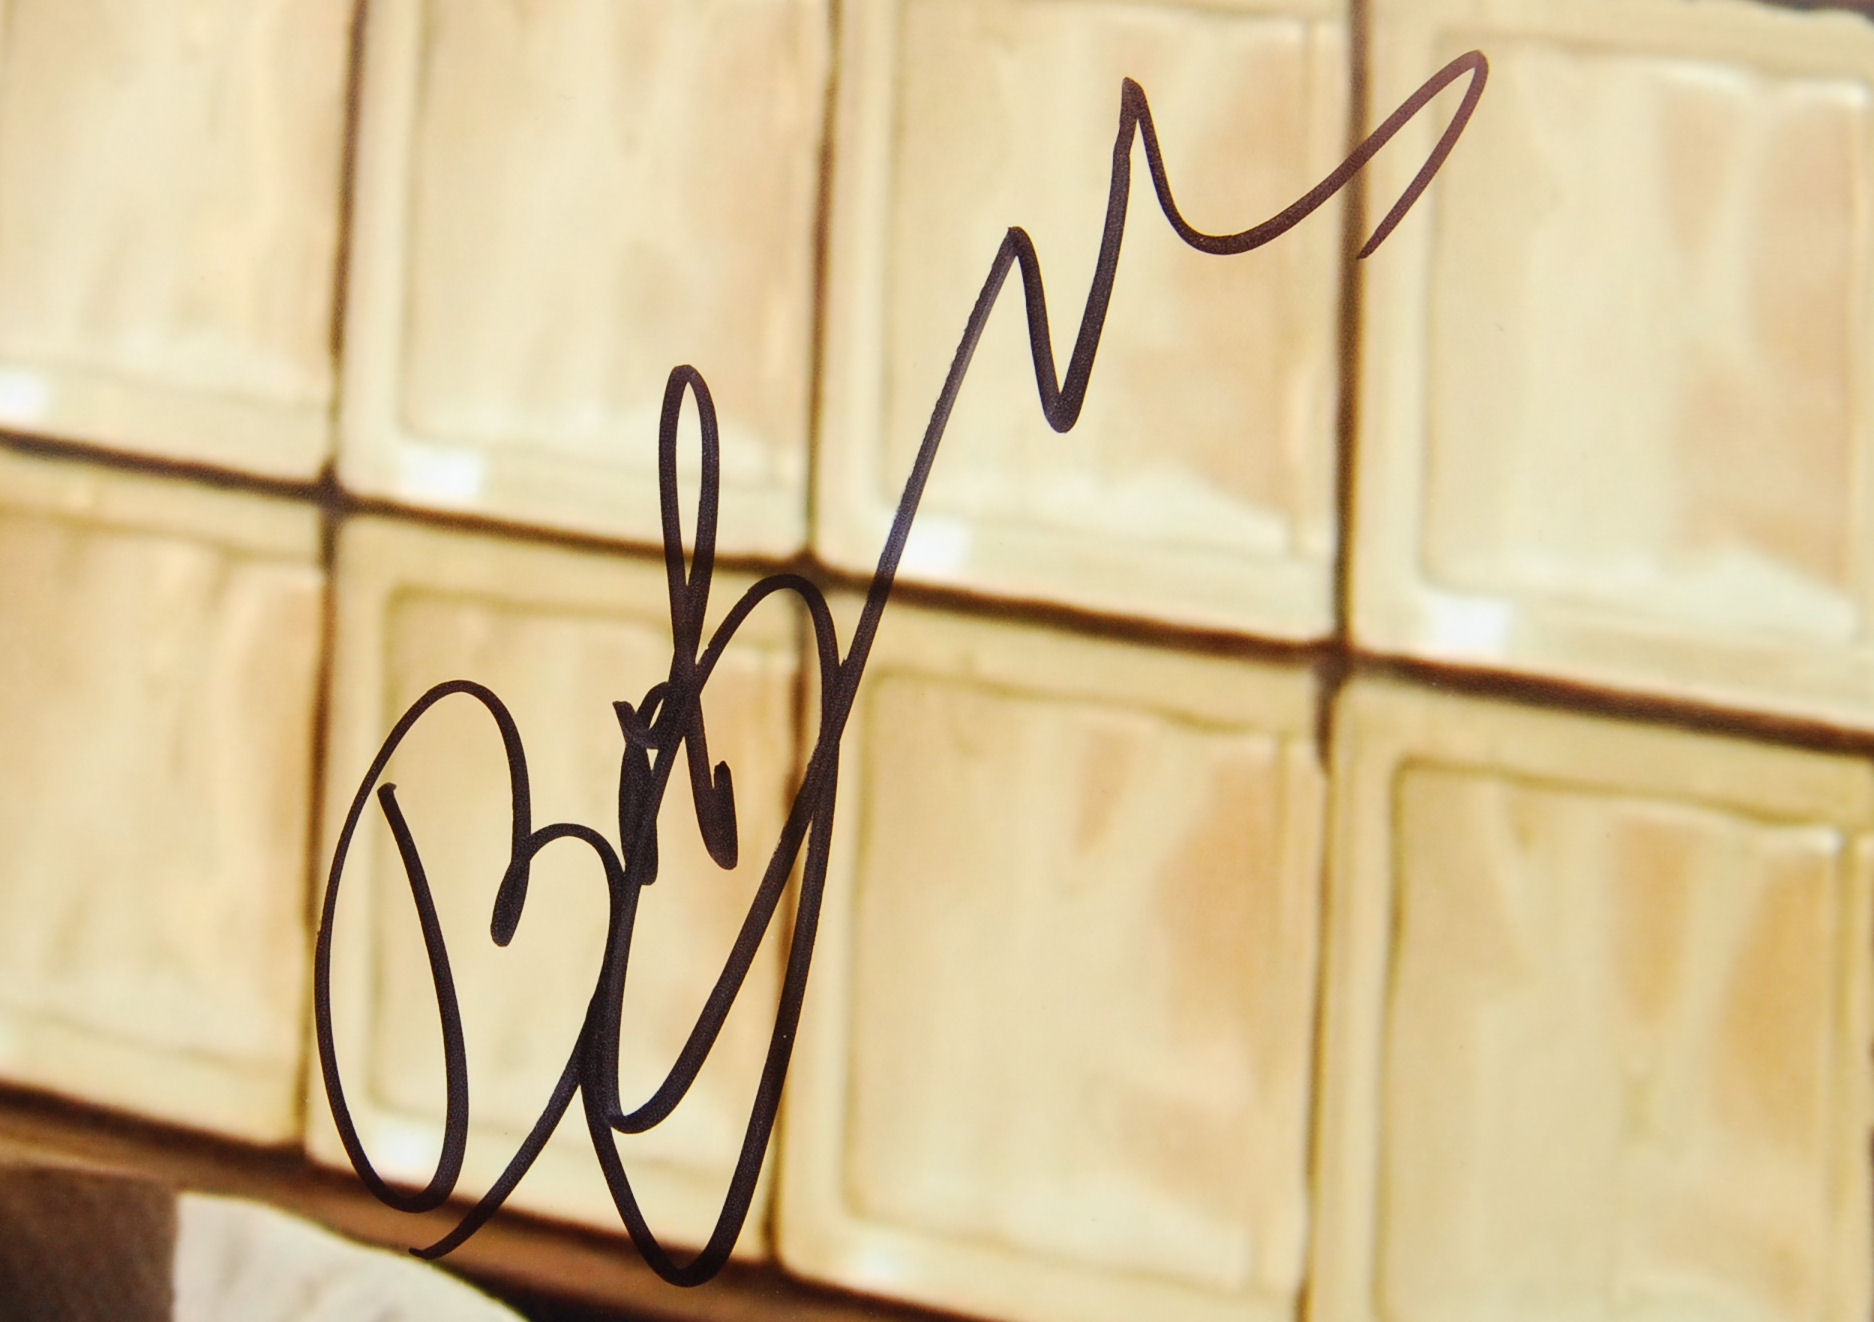 """ROBERT DUVALL - THE GODFATHER - SIGNED 8X10"""" PHOTO - Image 2 of 2"""